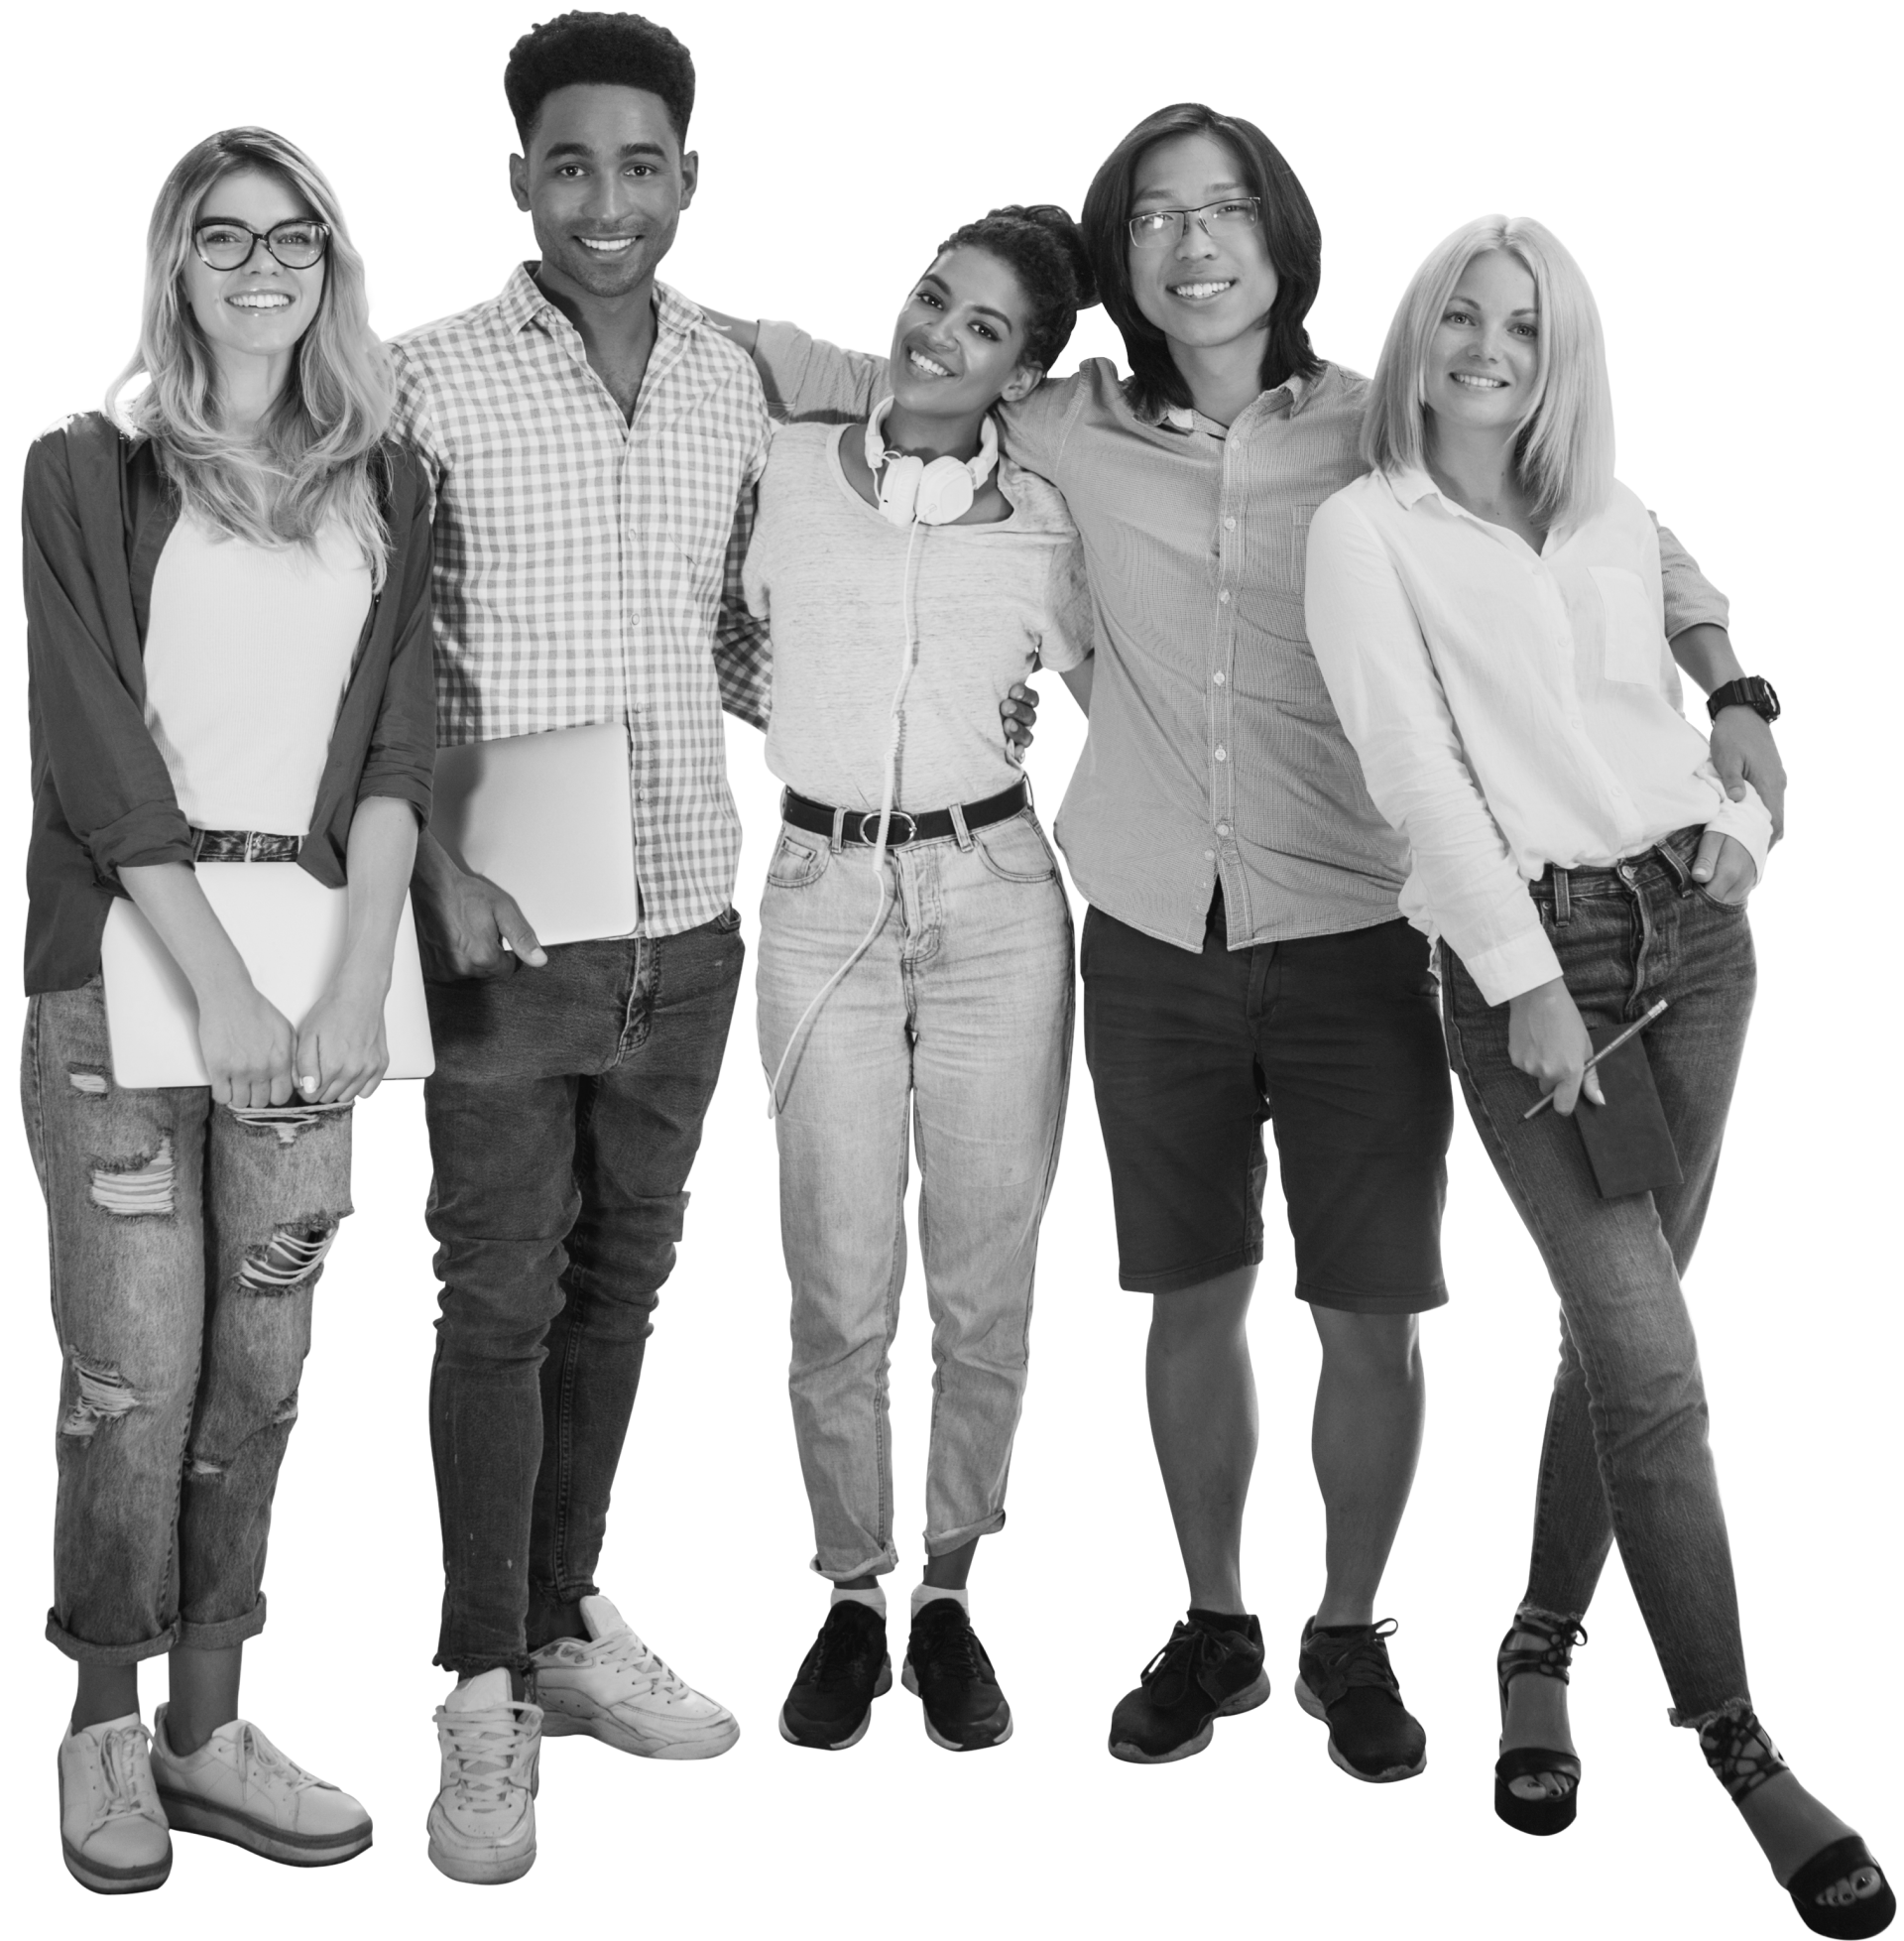 A group of young people posing for a photo